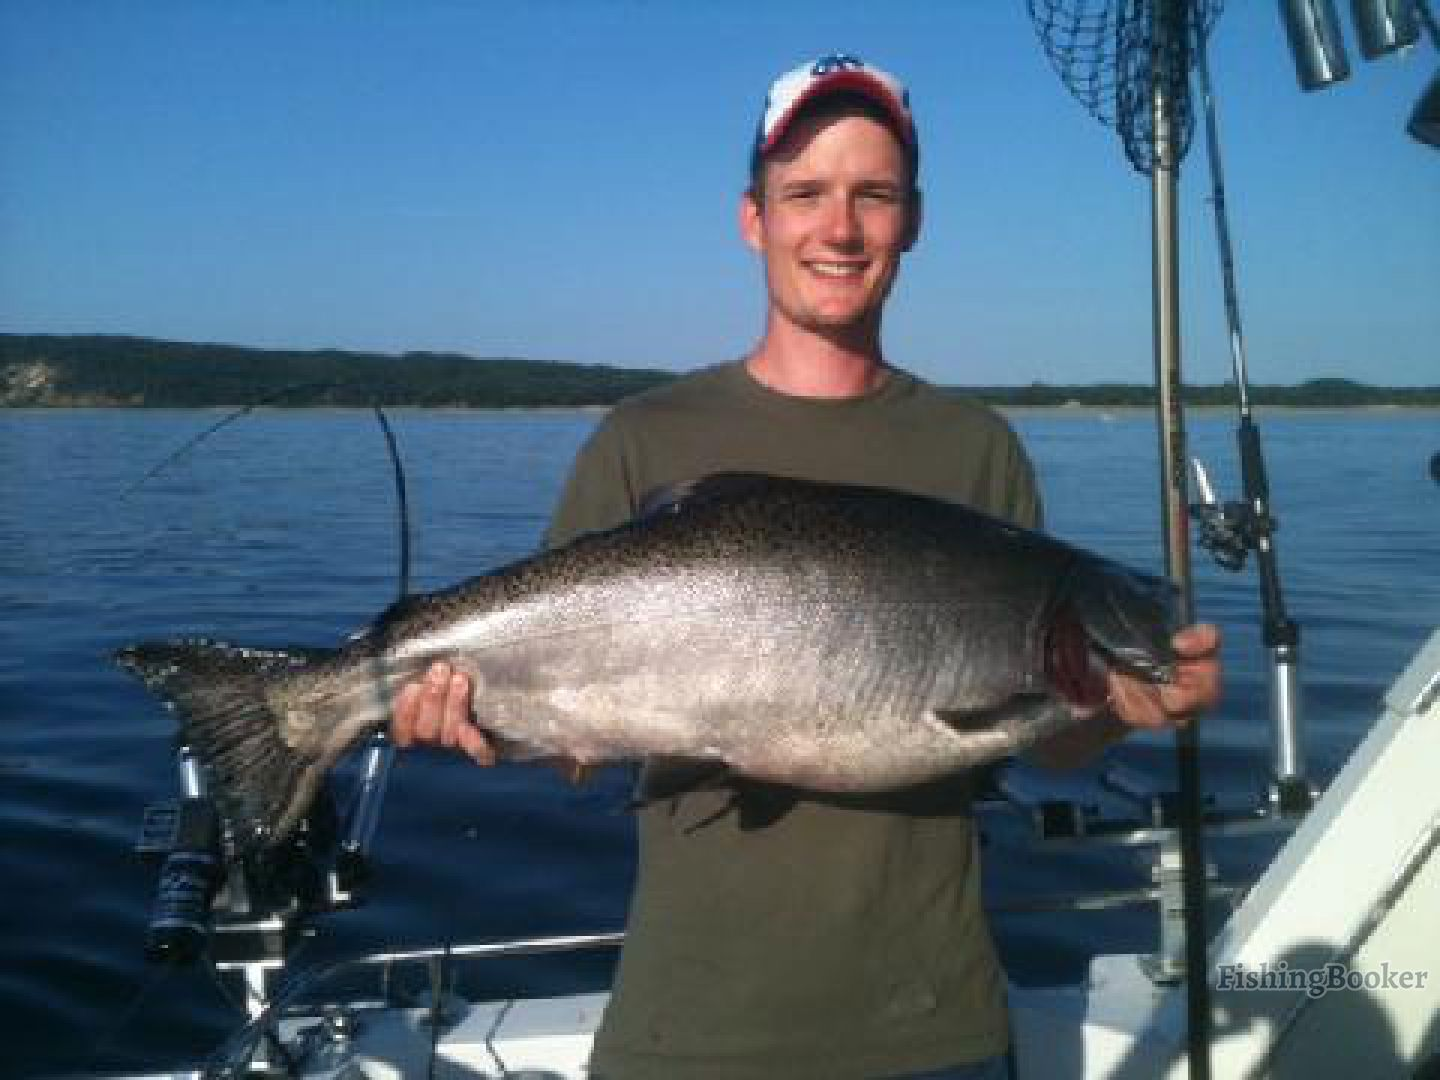 Prime time fishing charters traverse city michigan for Traverse city fishing charters